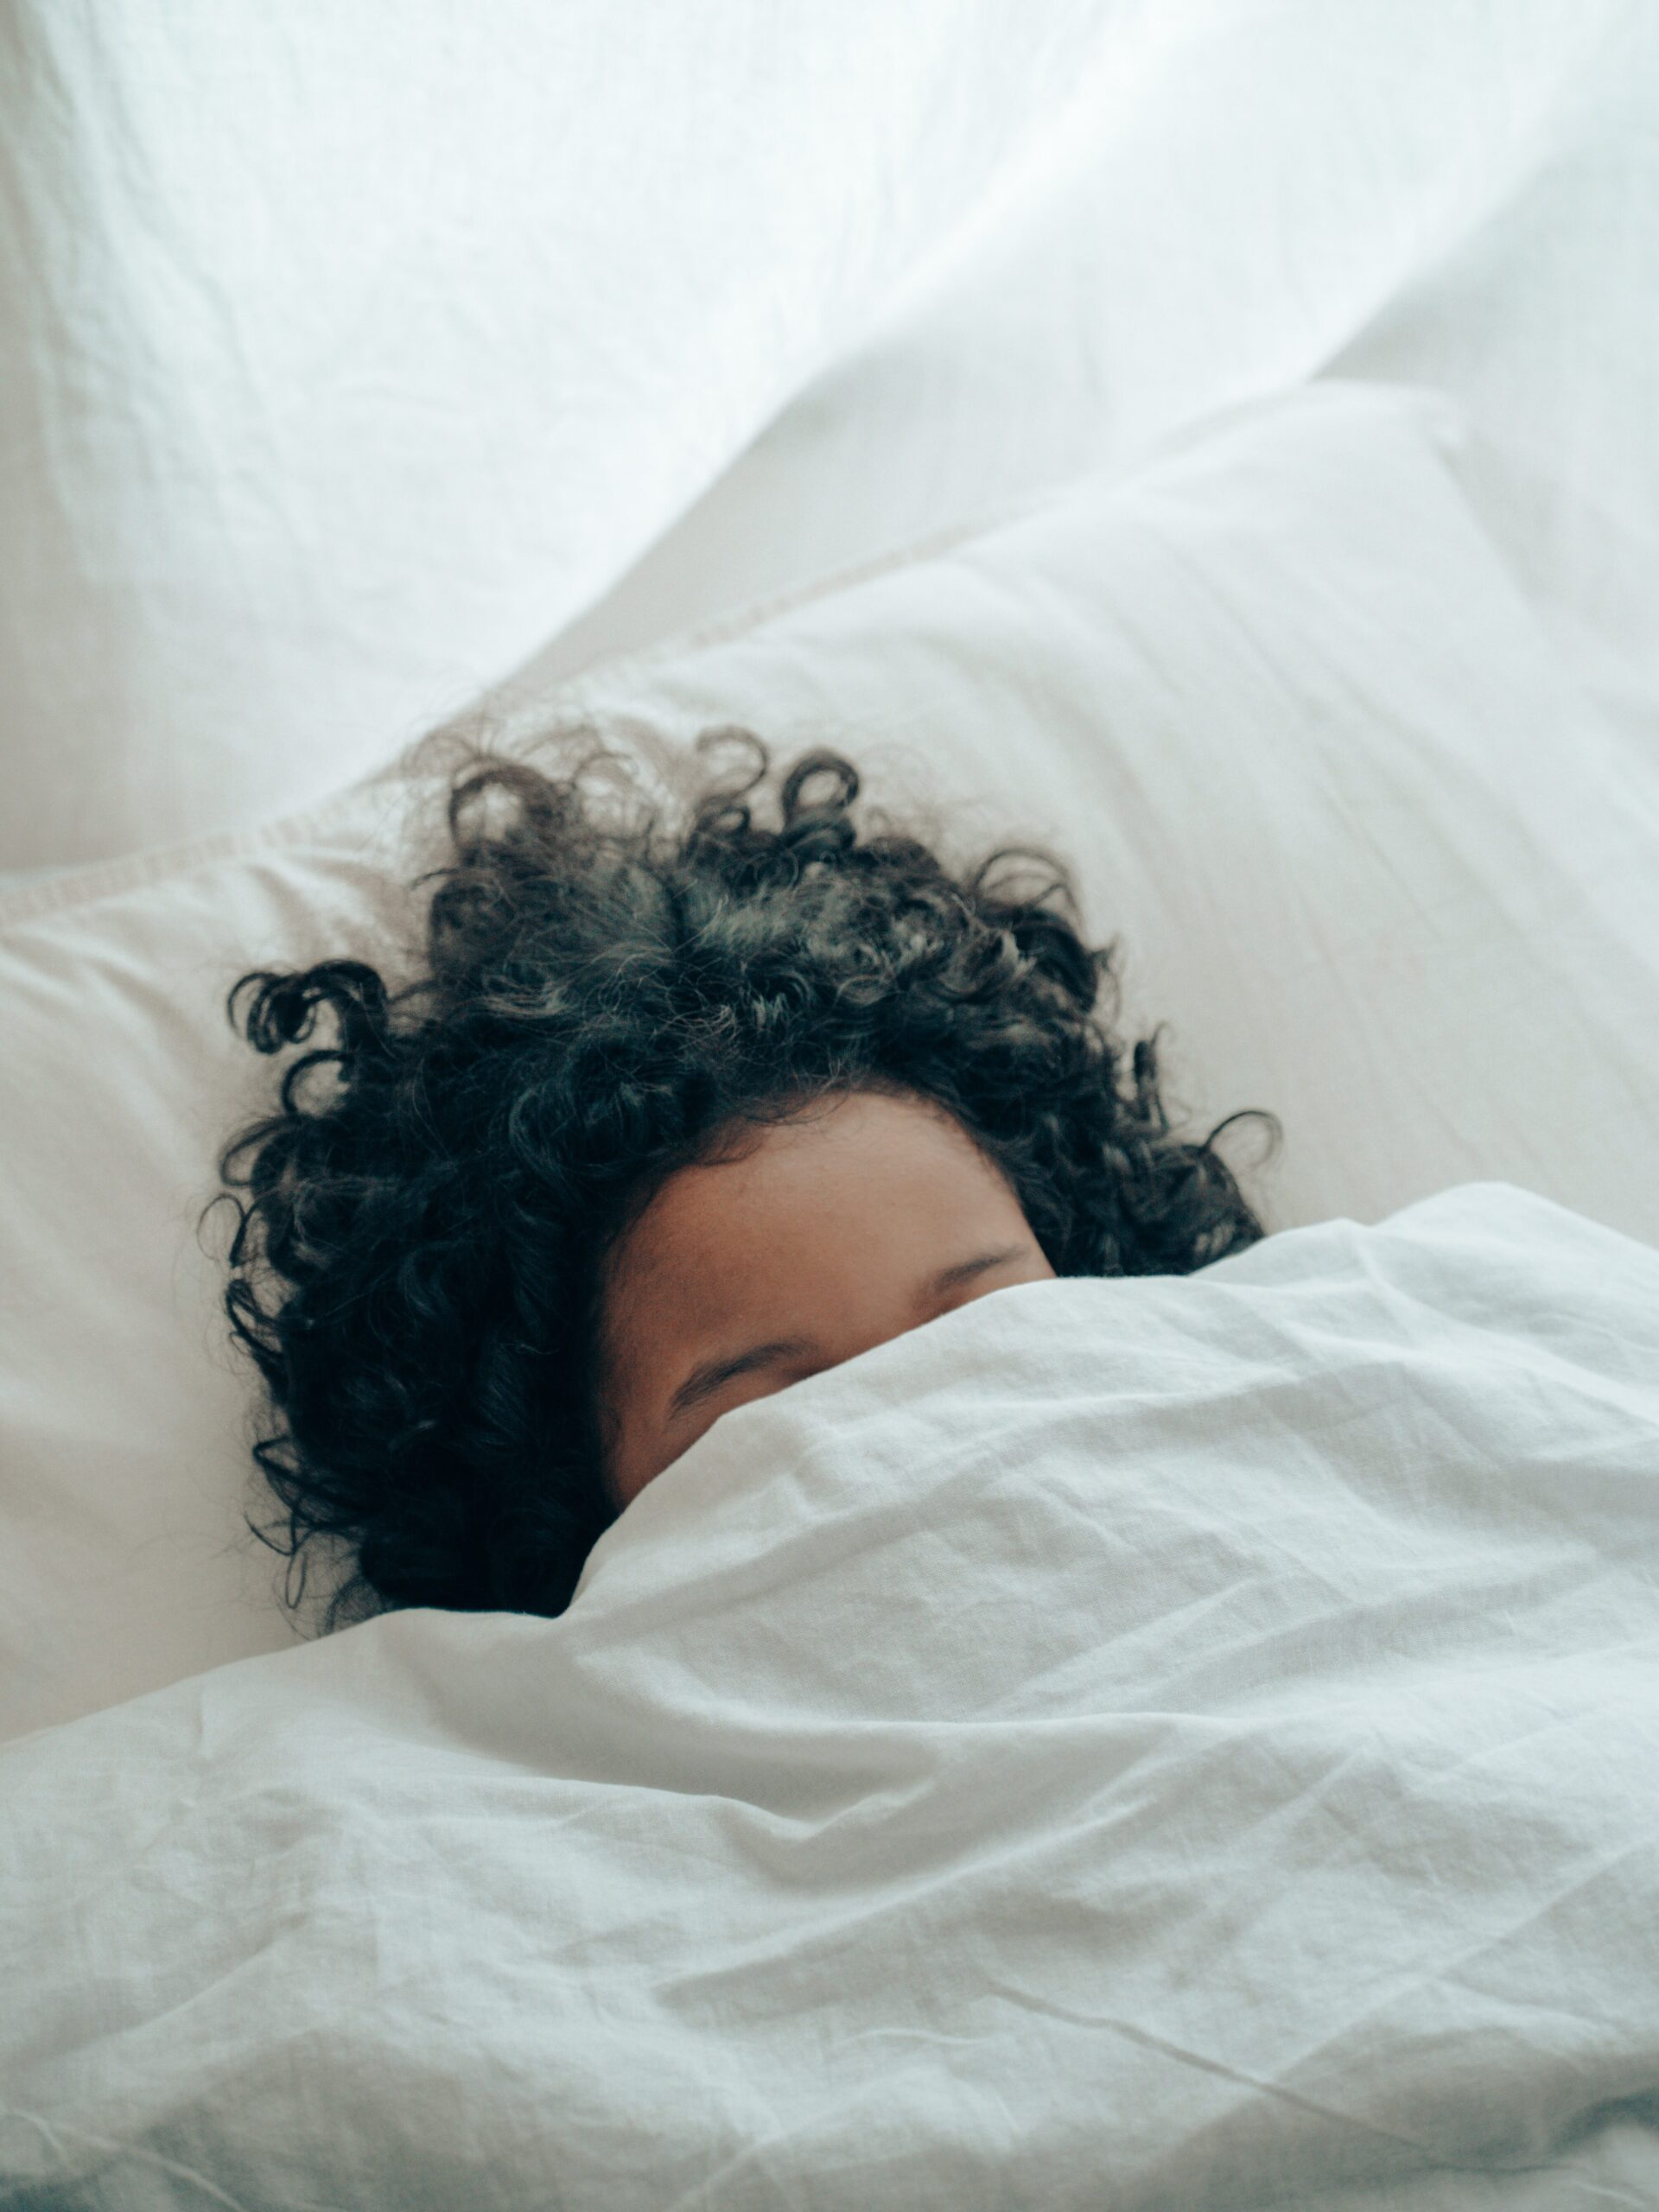 Hitting The Wall, girl sleeping under white covers